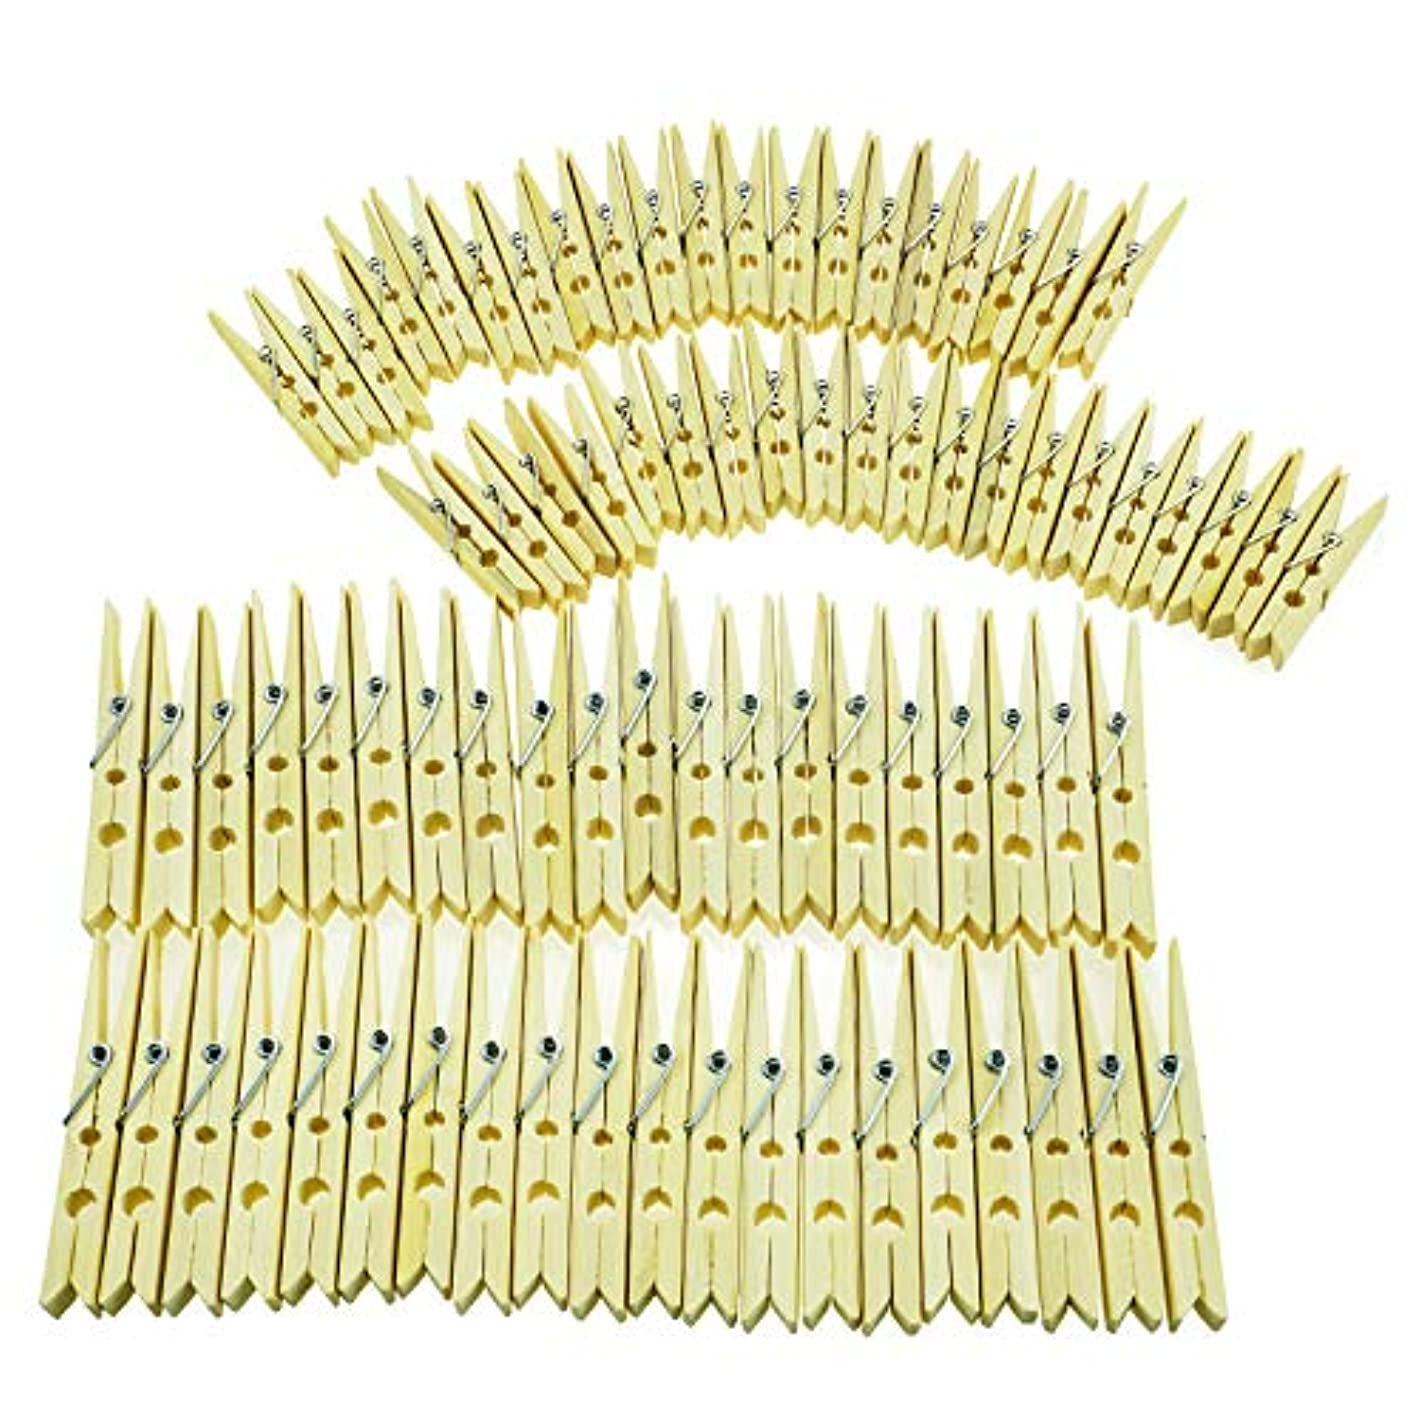 neeyeetag Natural Bamboo Heavy Duty Clothes Pins/Pegs/Clips, Large Size 3.74